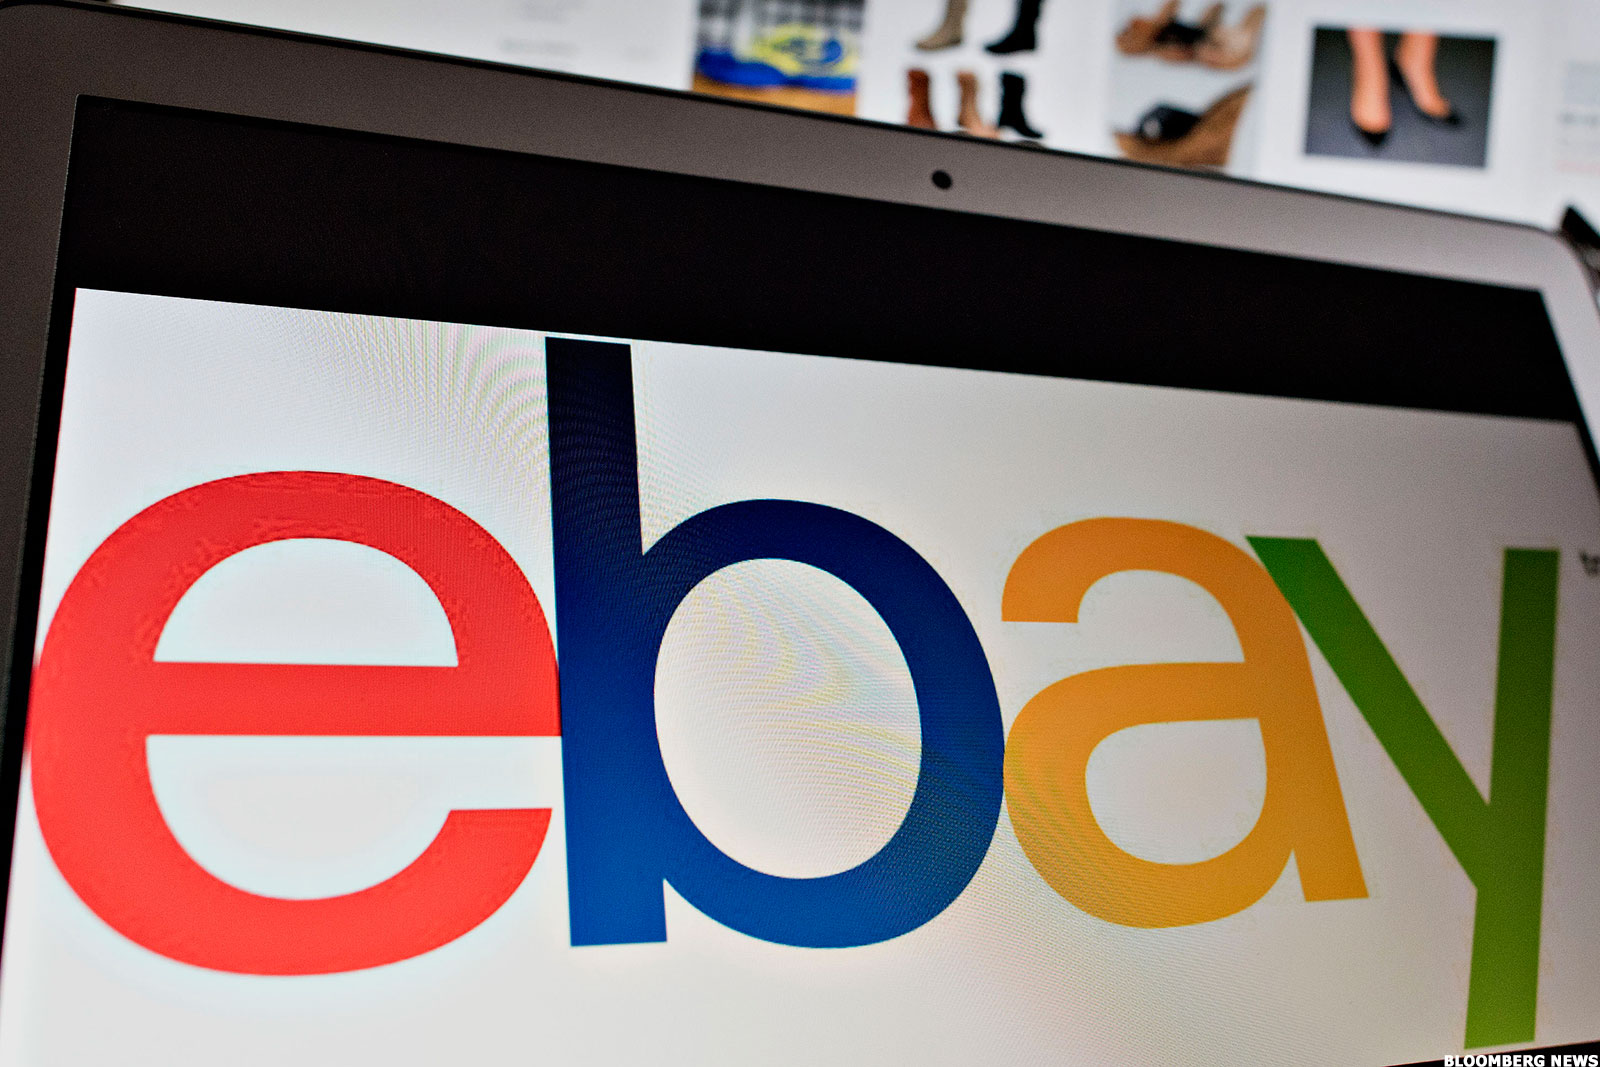 Ebay Shares Jump After Morgan Stanley Upgrade Linked To Payments